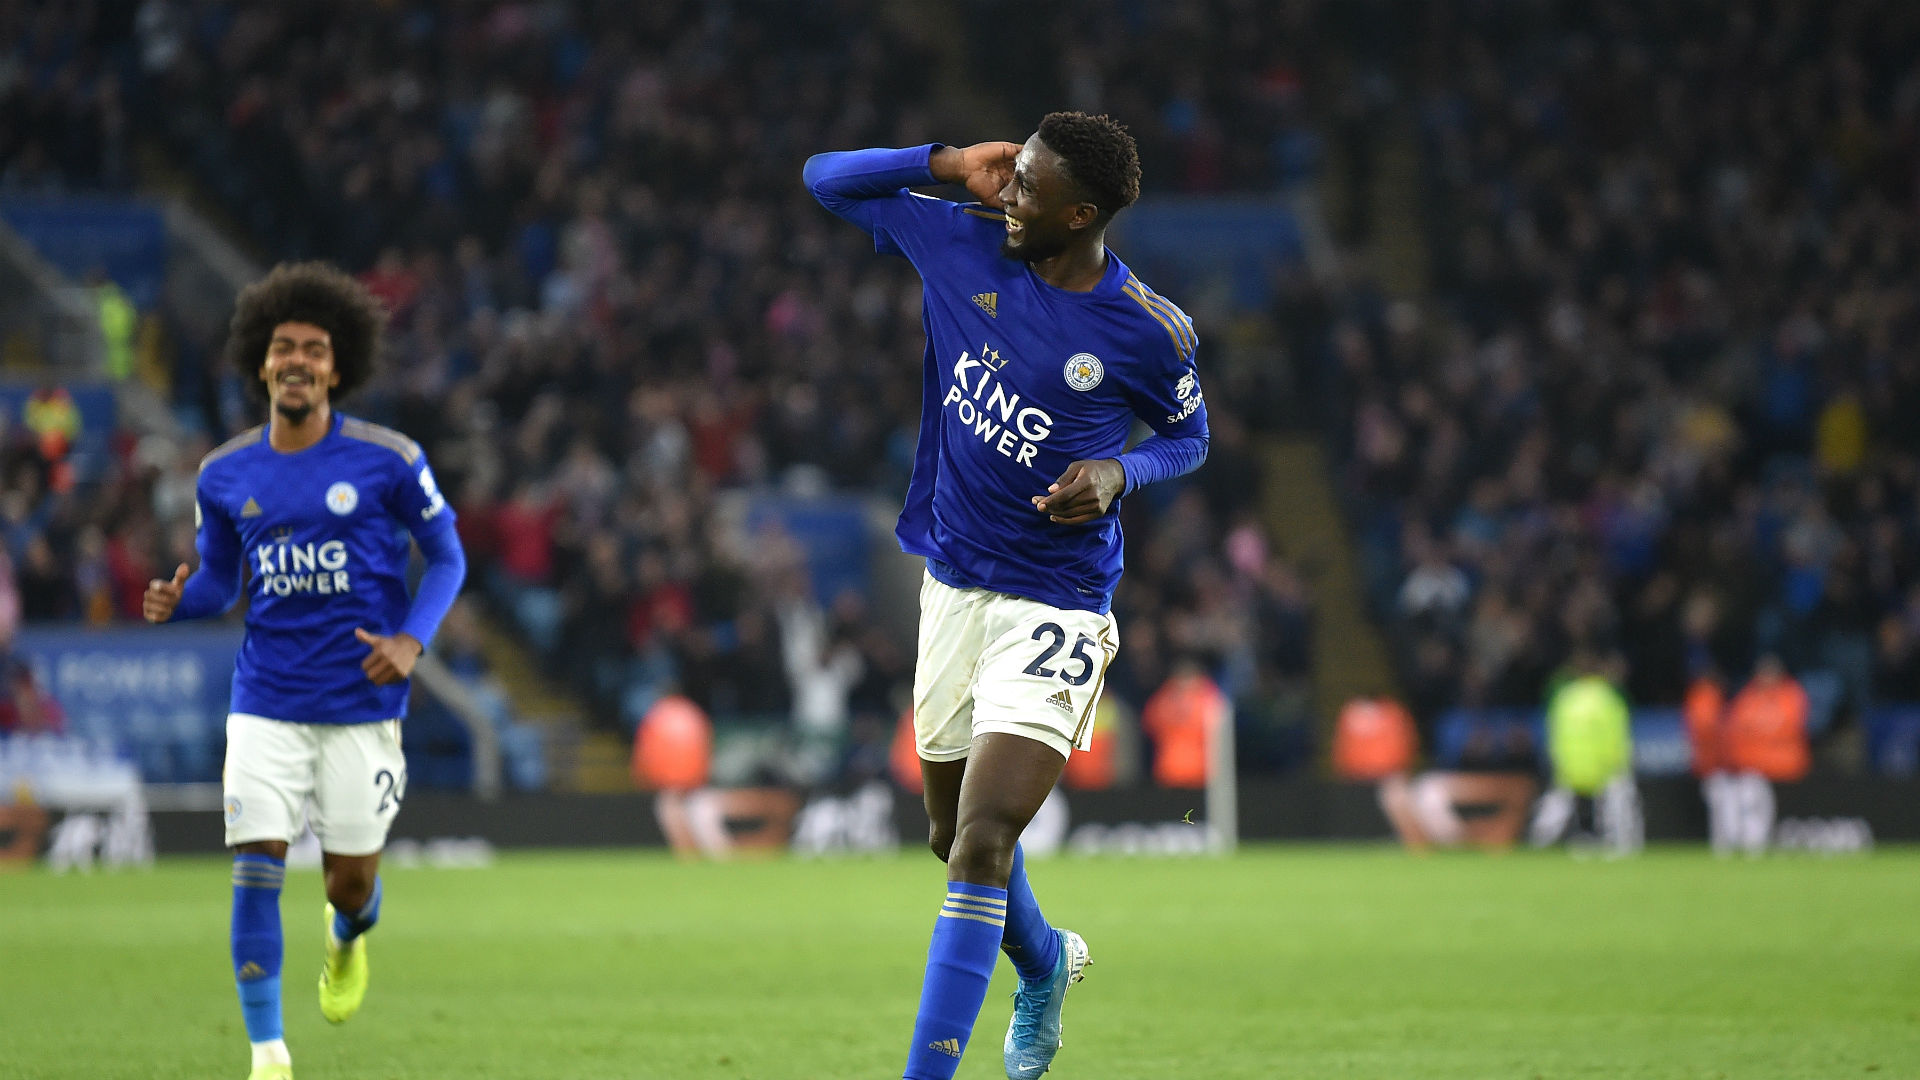 Wilfred Ndidi hails Leicester City Boss Rodgers